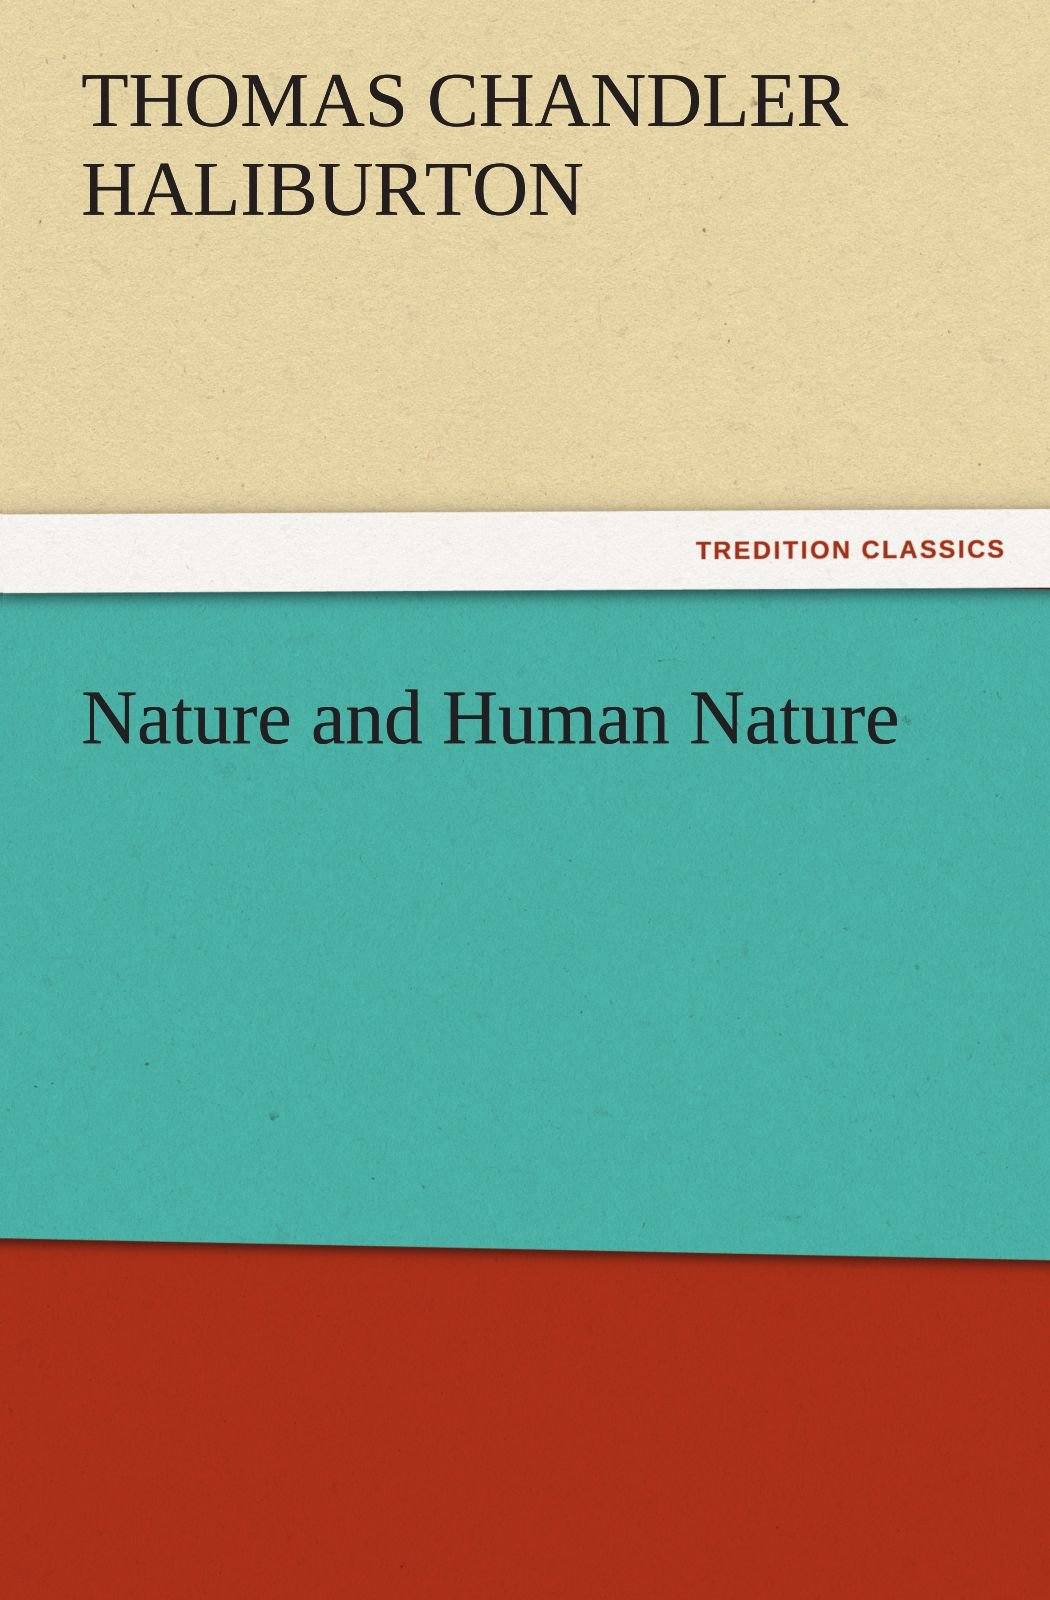 Download Nature and Human Nature (TREDITION CLASSICS) PDF